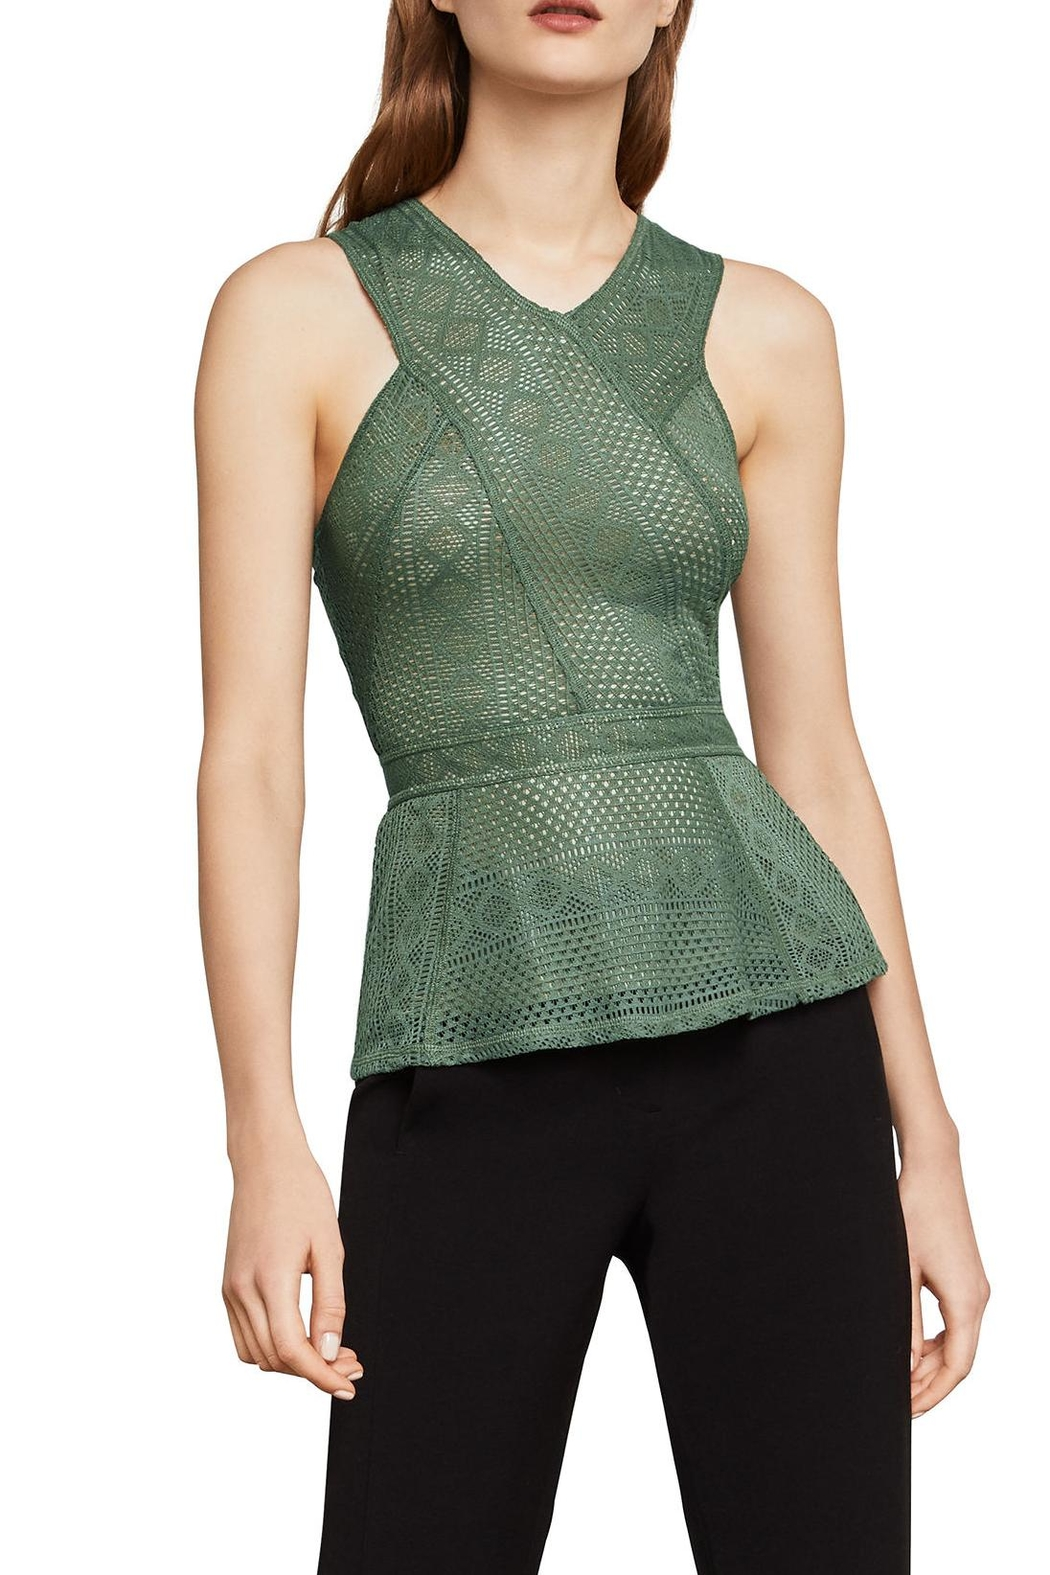 BCBG Max Azria Lace Peplum Top - Front Cropped Image